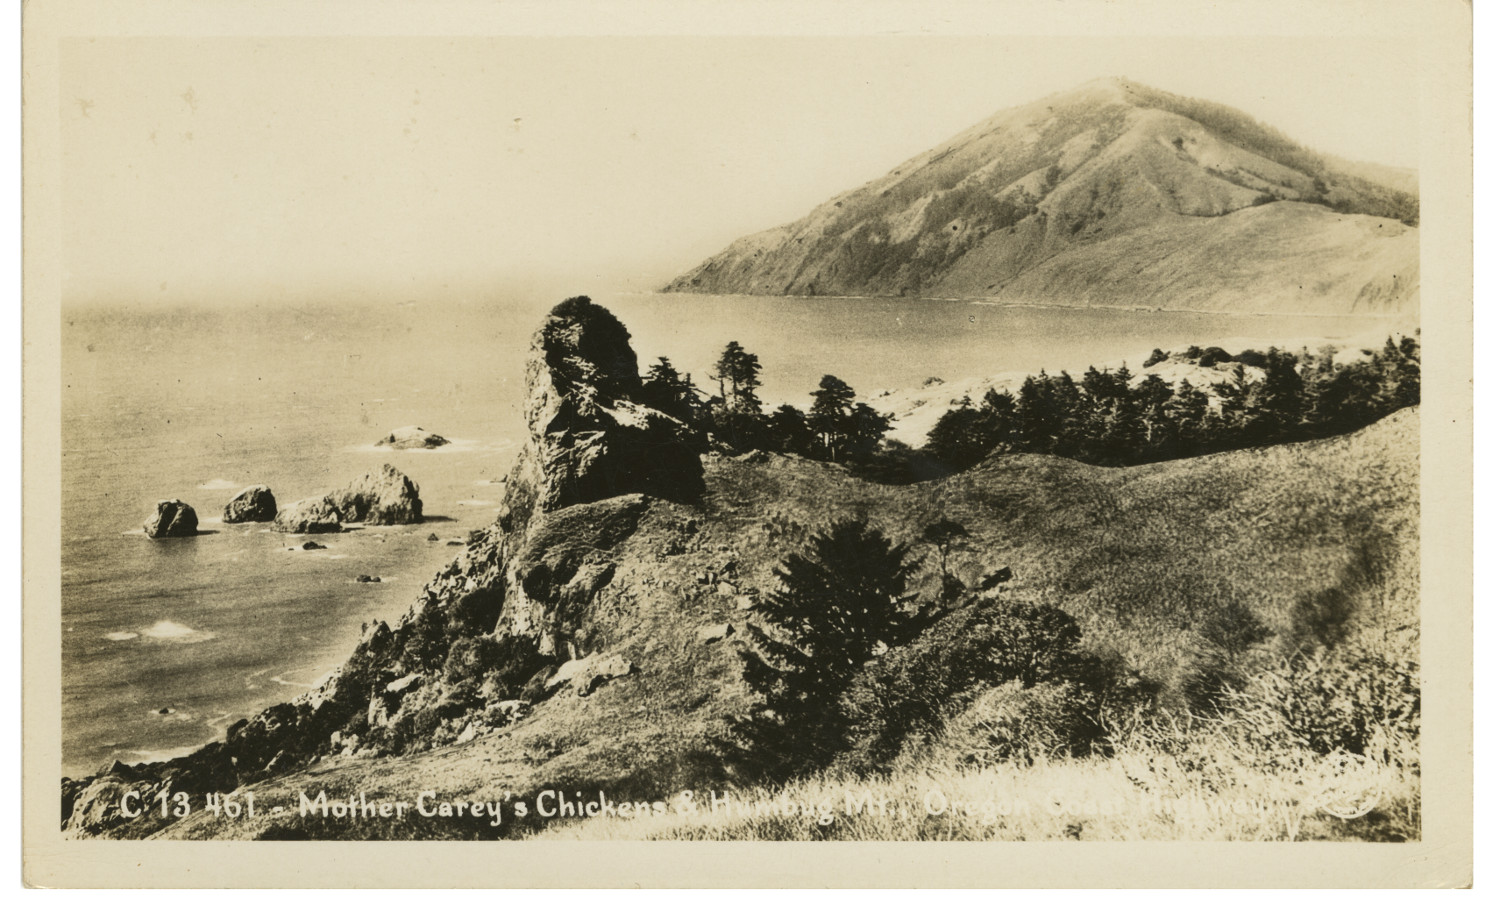 Mother Carey's Chickens and Humbug Mountain. Sawyers Collection.